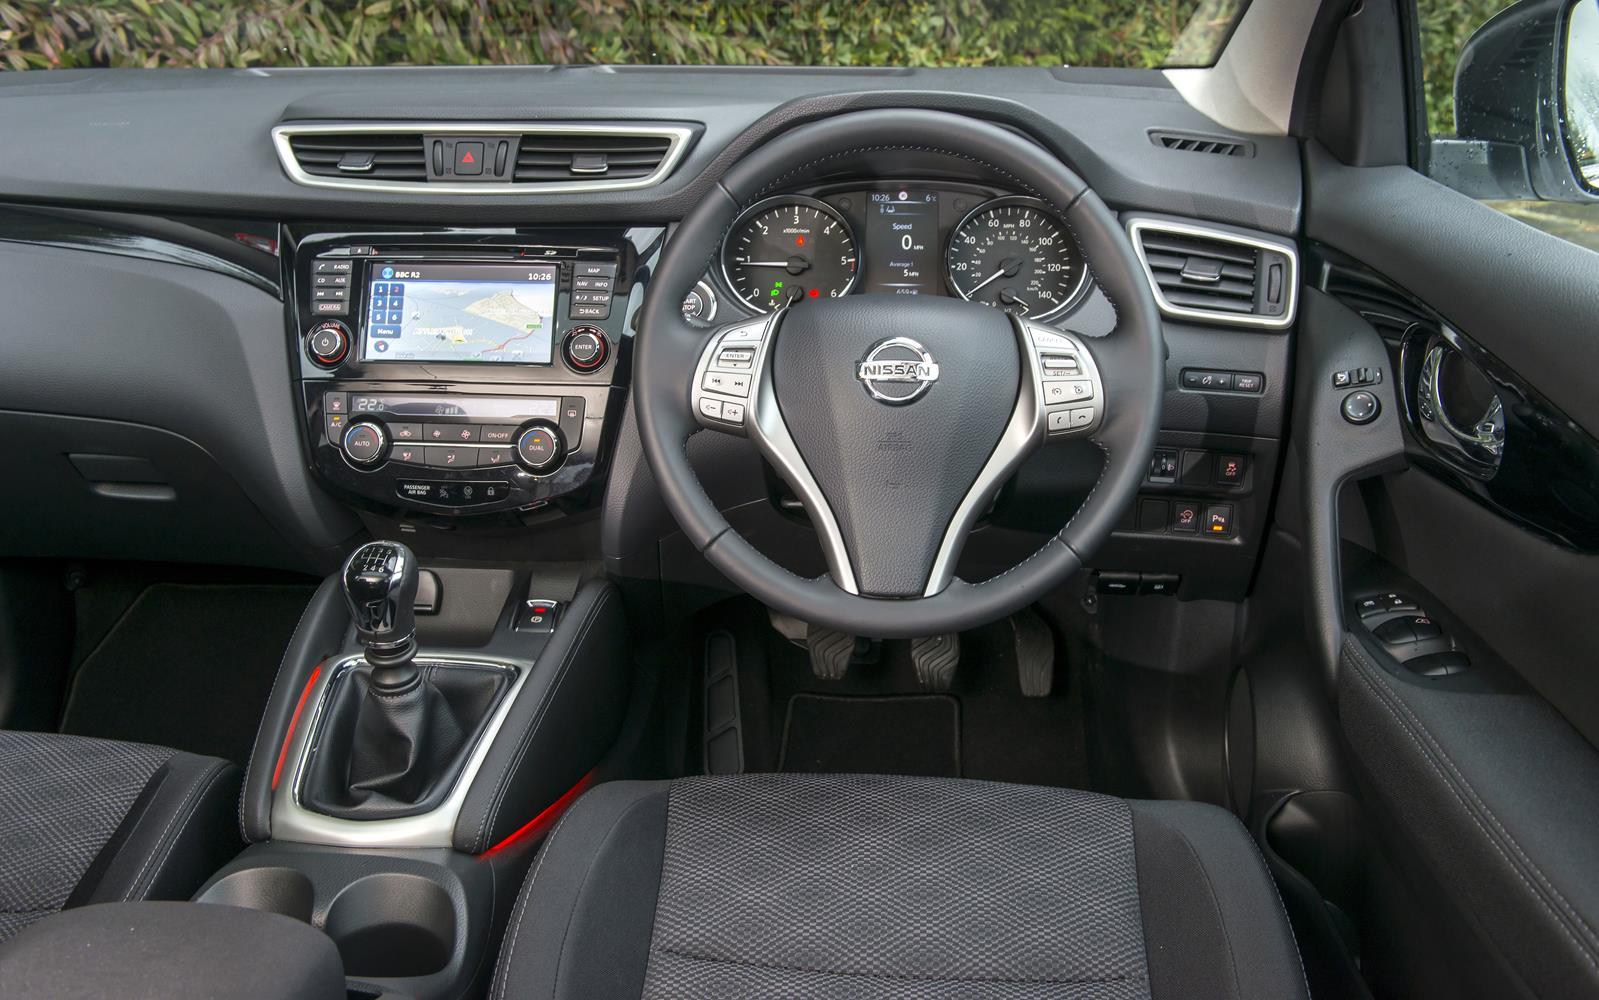 Nissan Qashqai 2014 Dashboard Frontseatdriver Co Uk Front Seat Driver